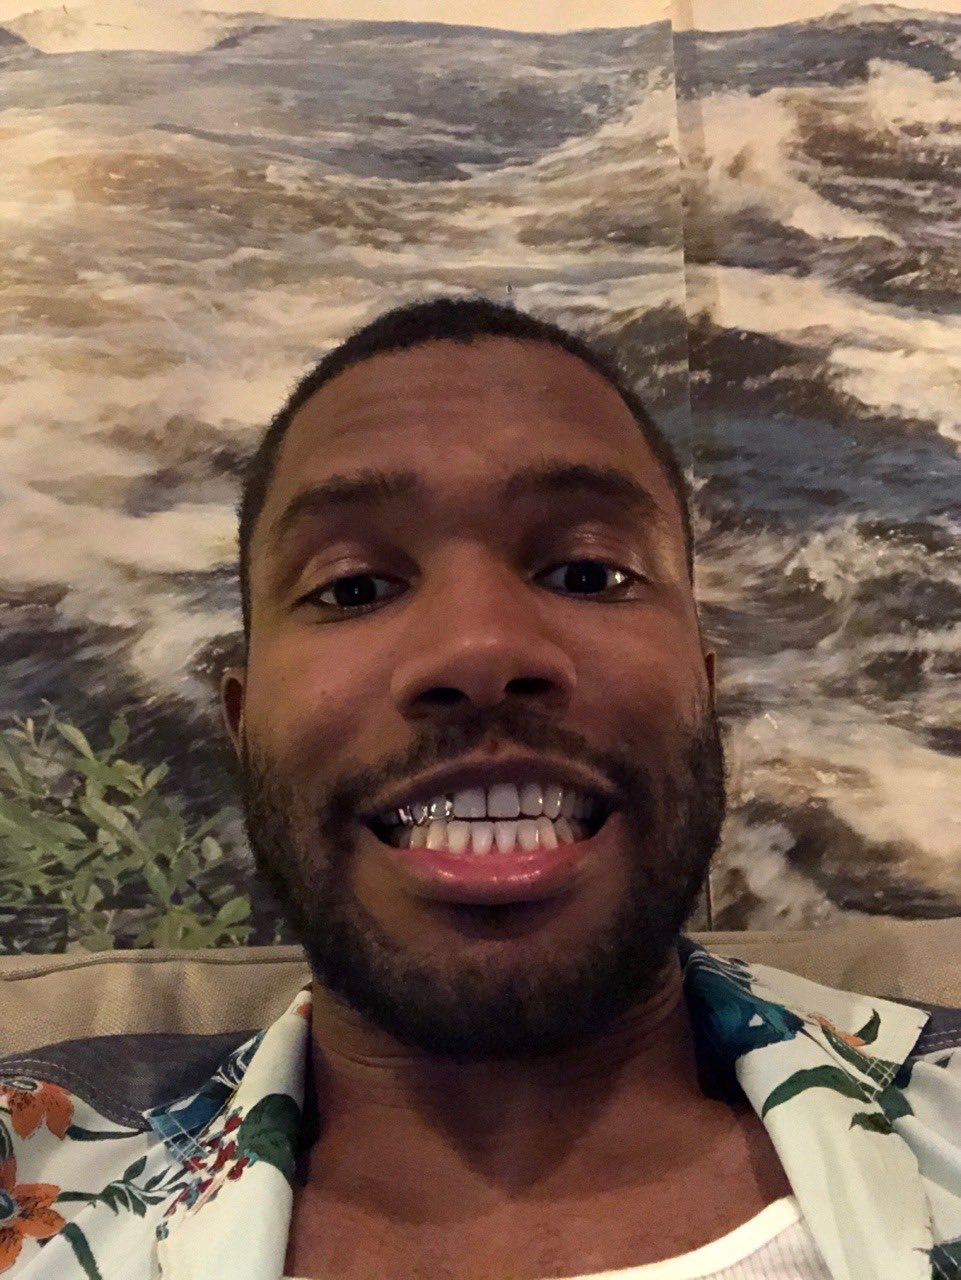 hello. may this rare frank ocean selfie bring you blessings into the forthcoming week and beyond https://t.co/ft0OoLtBUt